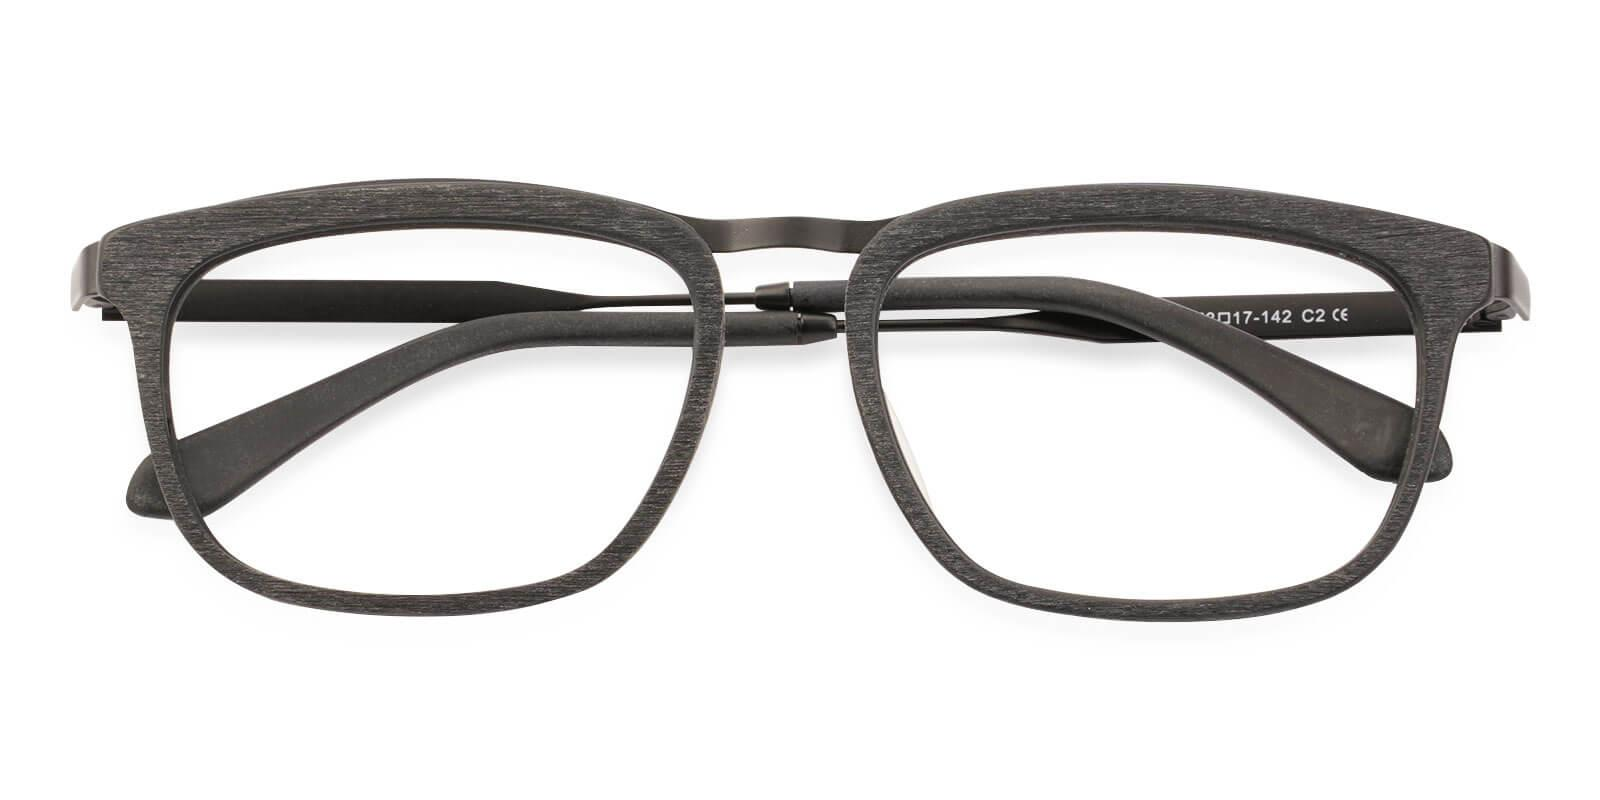 Audrey Striped Acetate , Metal Eyeglasses , UniversalBridgeFit Frames from ABBE Glasses